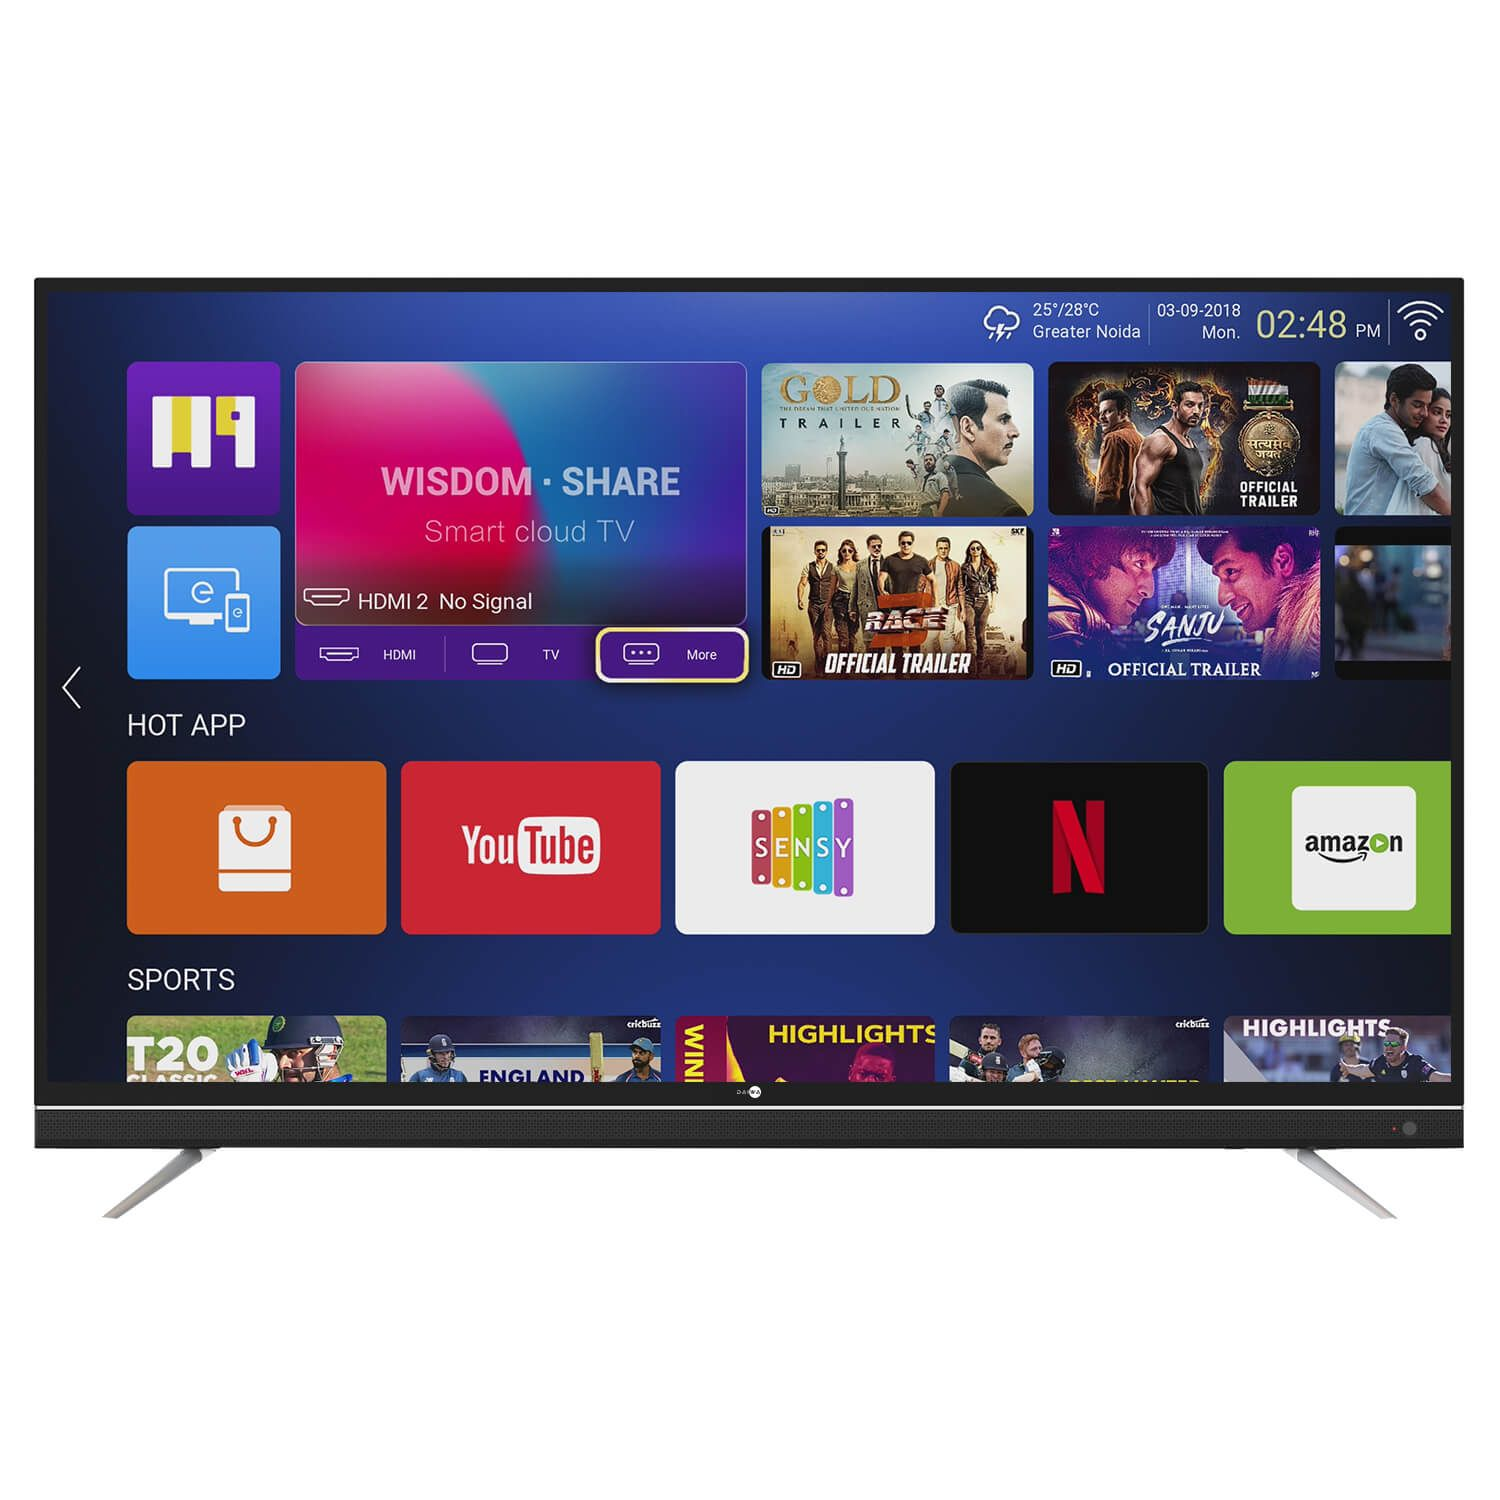 Daiwa 49 inch 4K UHD Quantum Luminit Smart LED TV Online